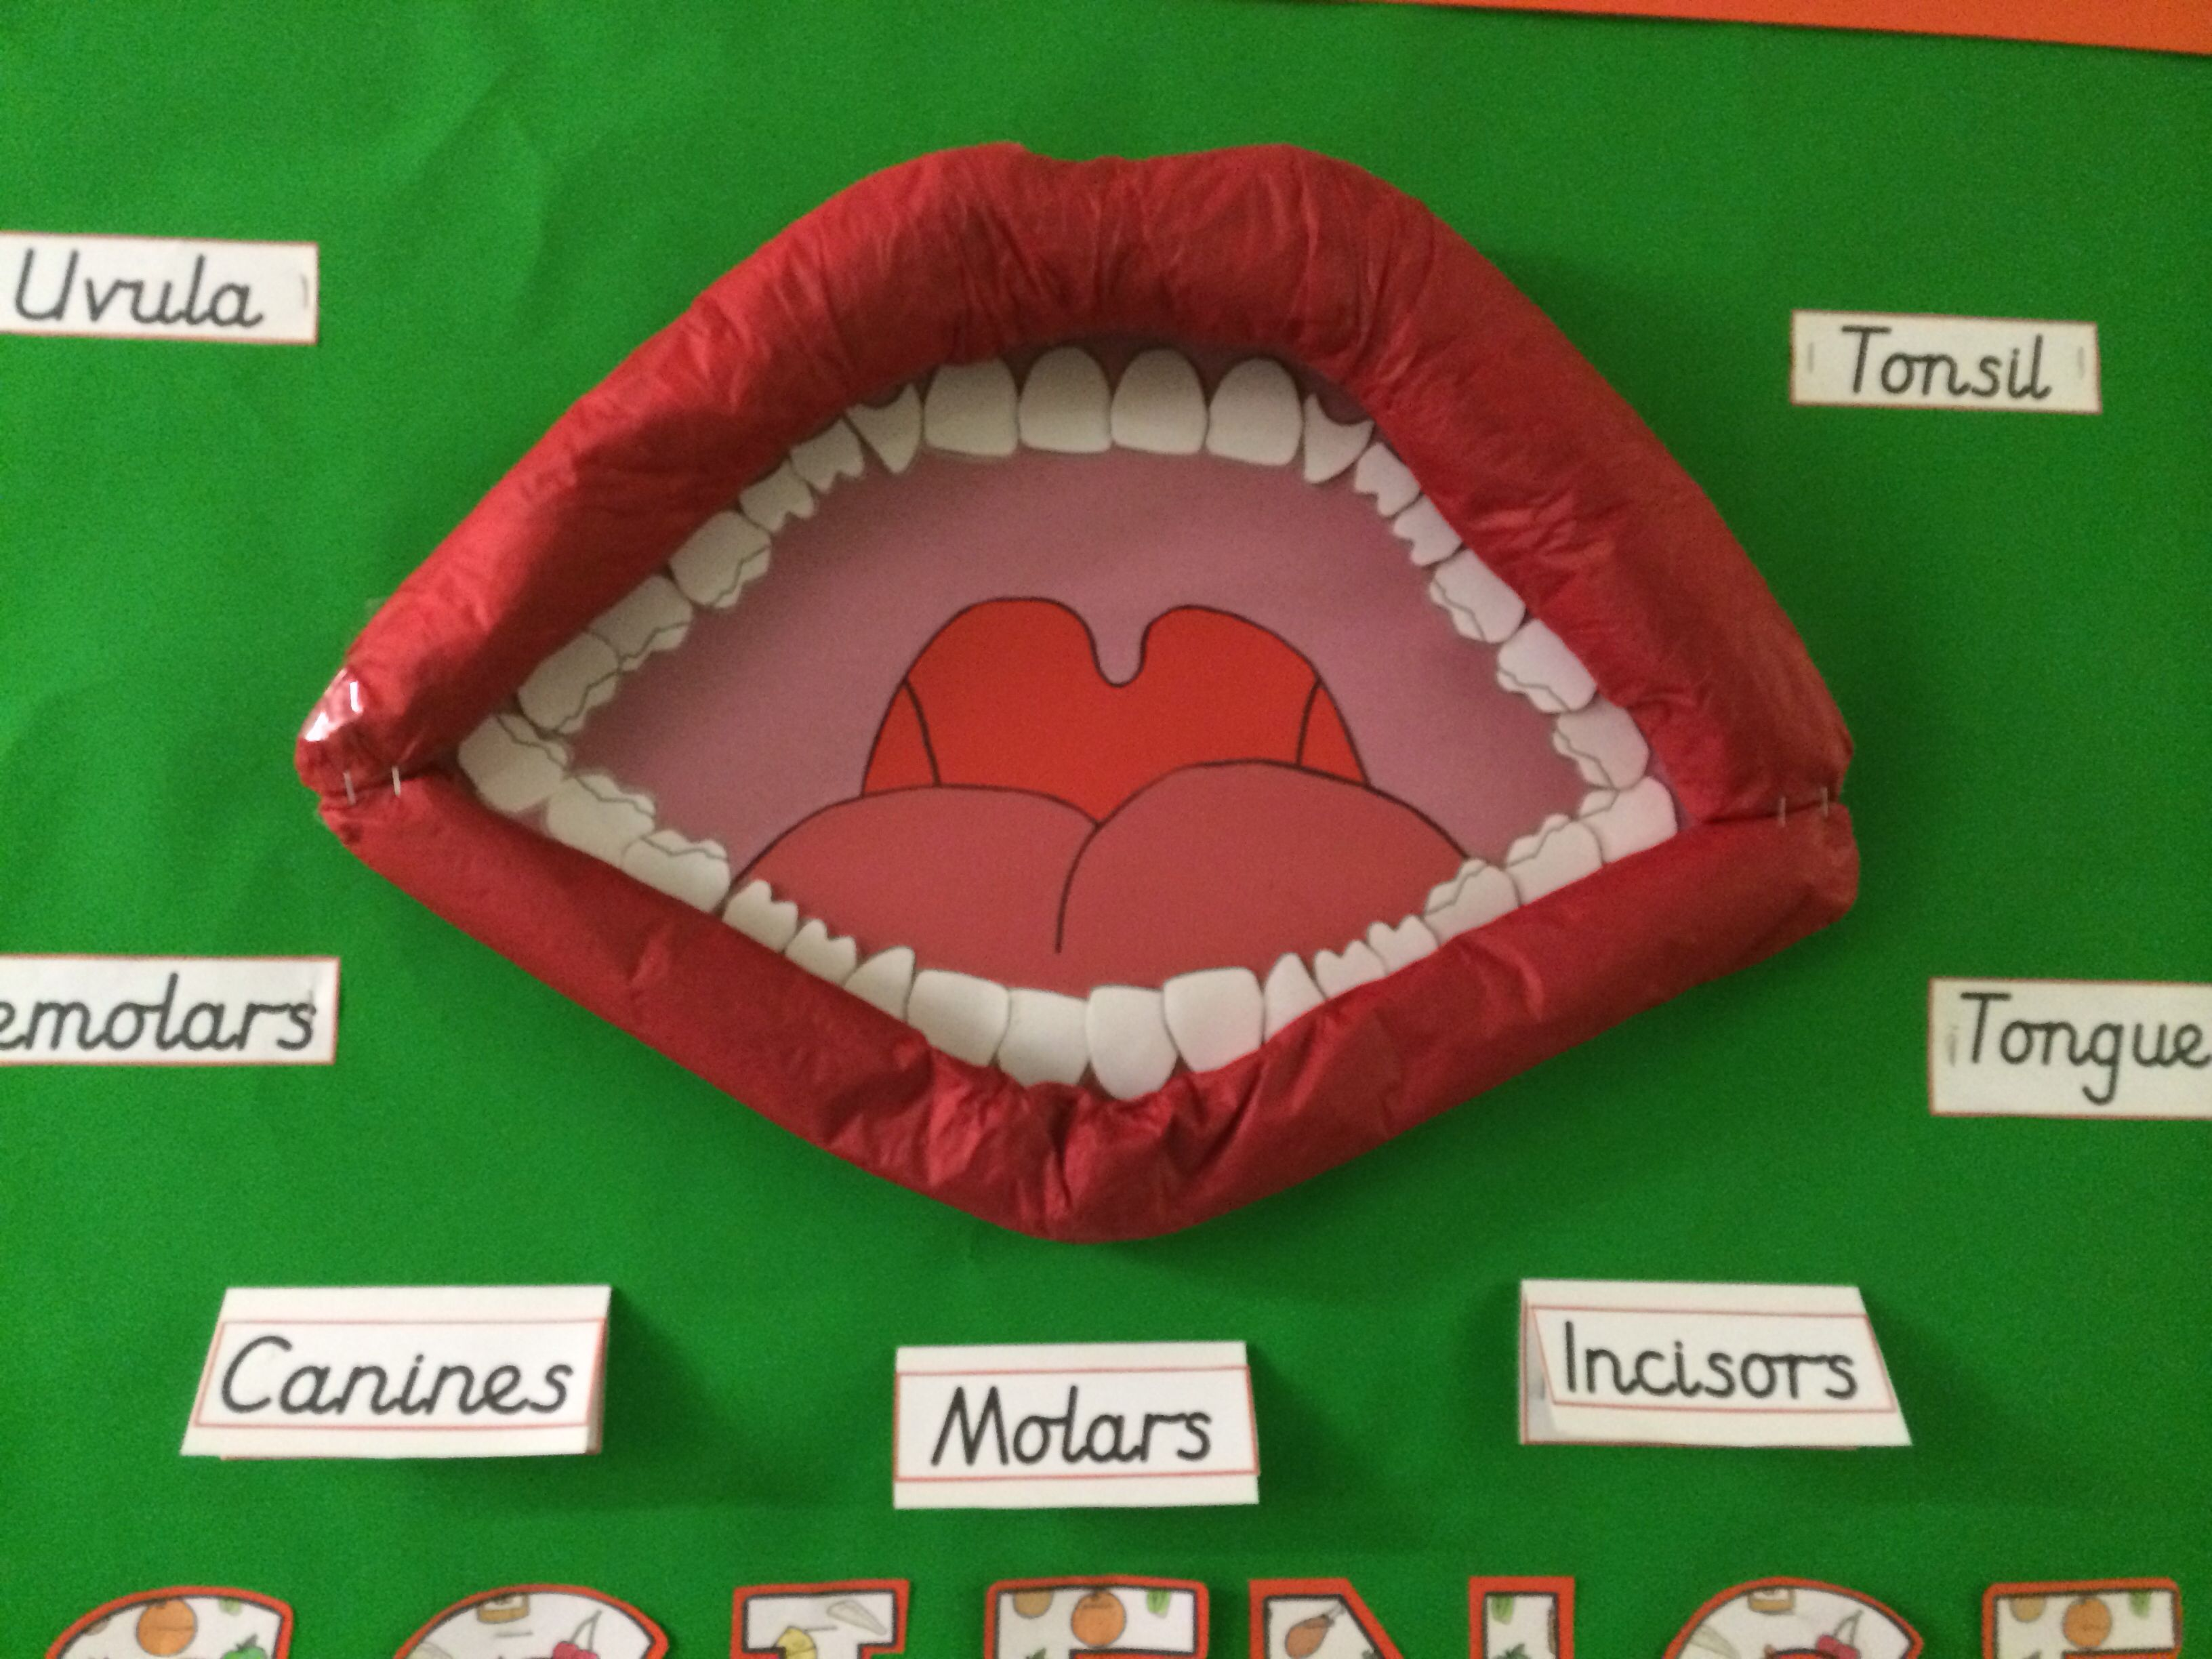 Primary School Display About Teeth And The Mouth